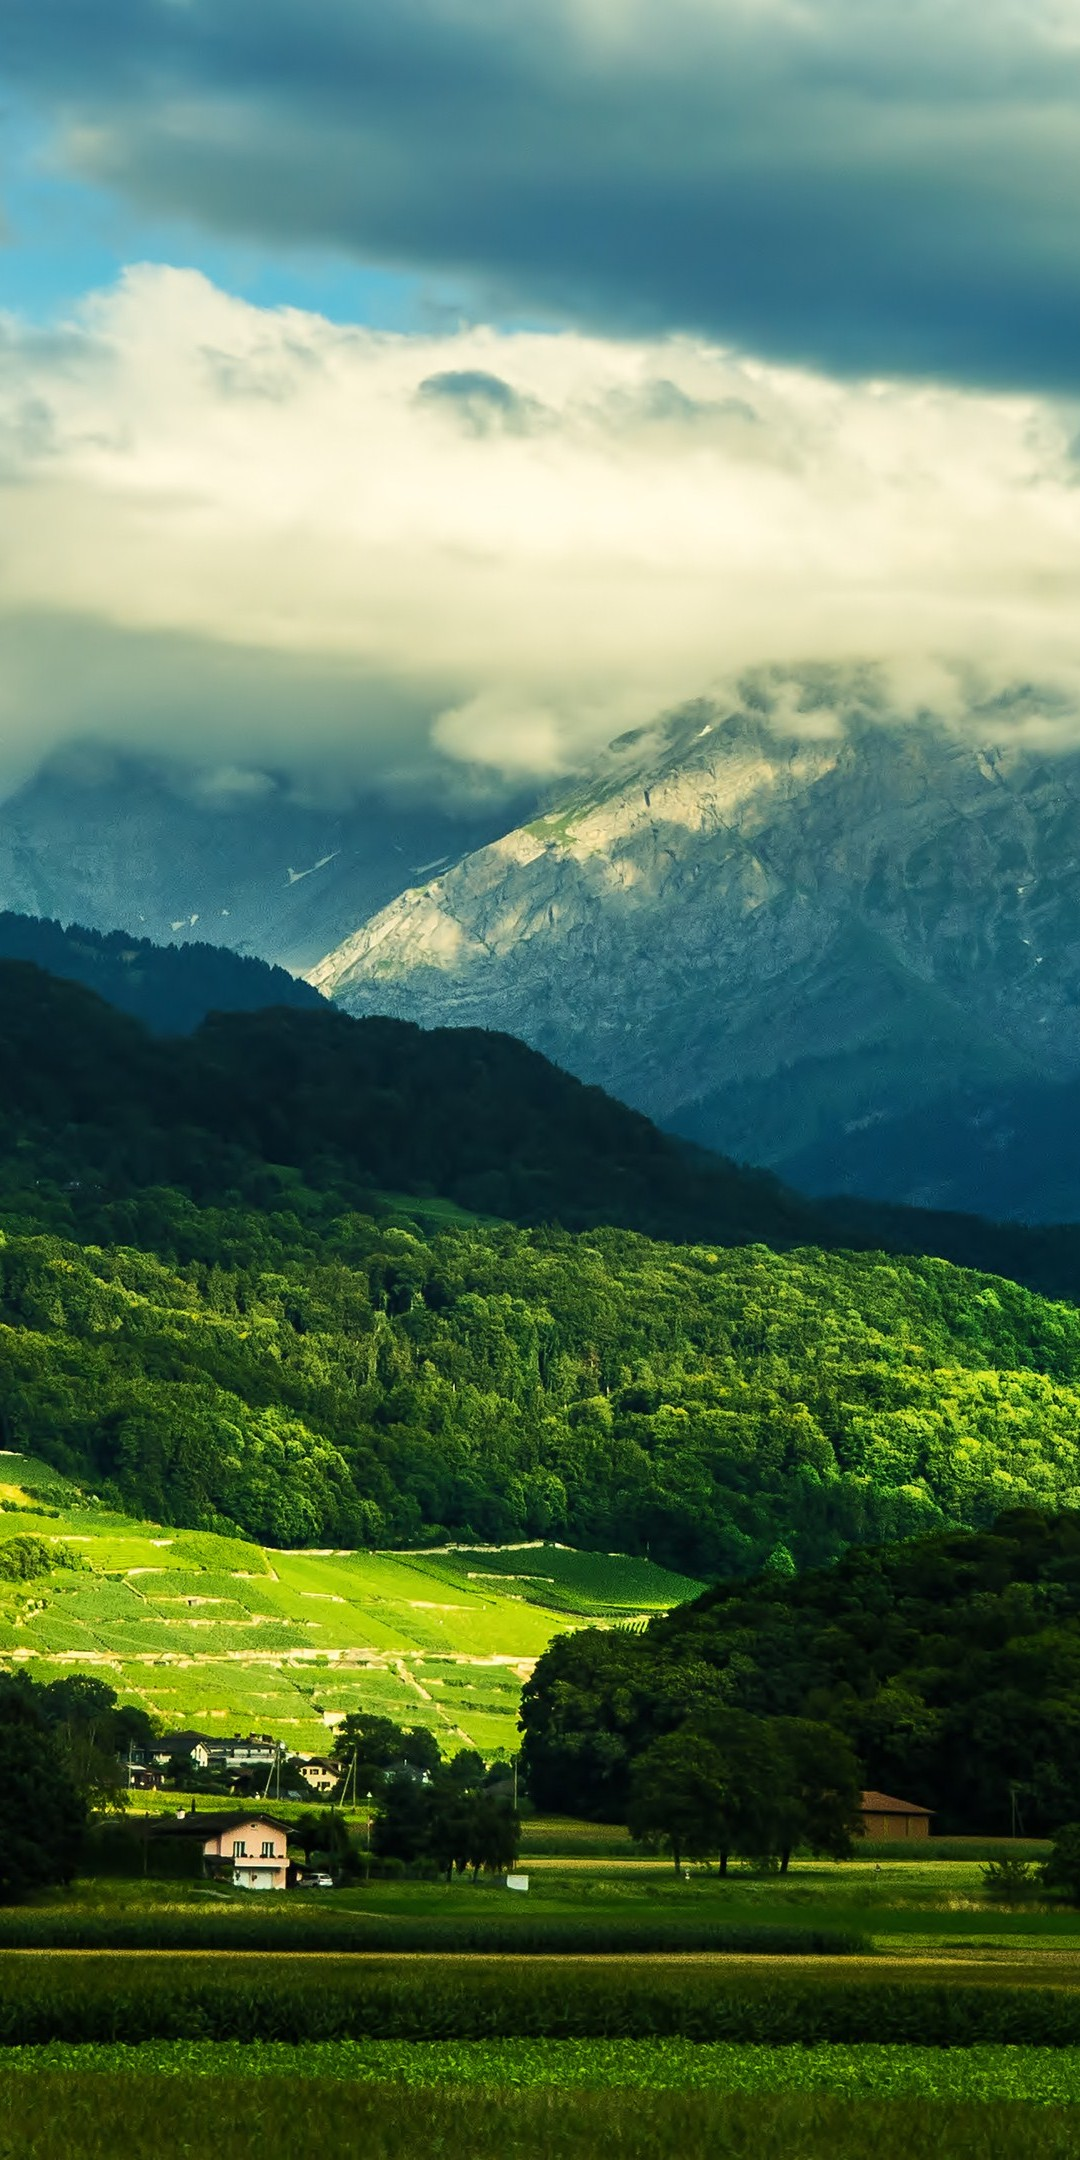 Plain Color Wallpaper For Iphone Beautiful Valley Wallpaper 1080x2160